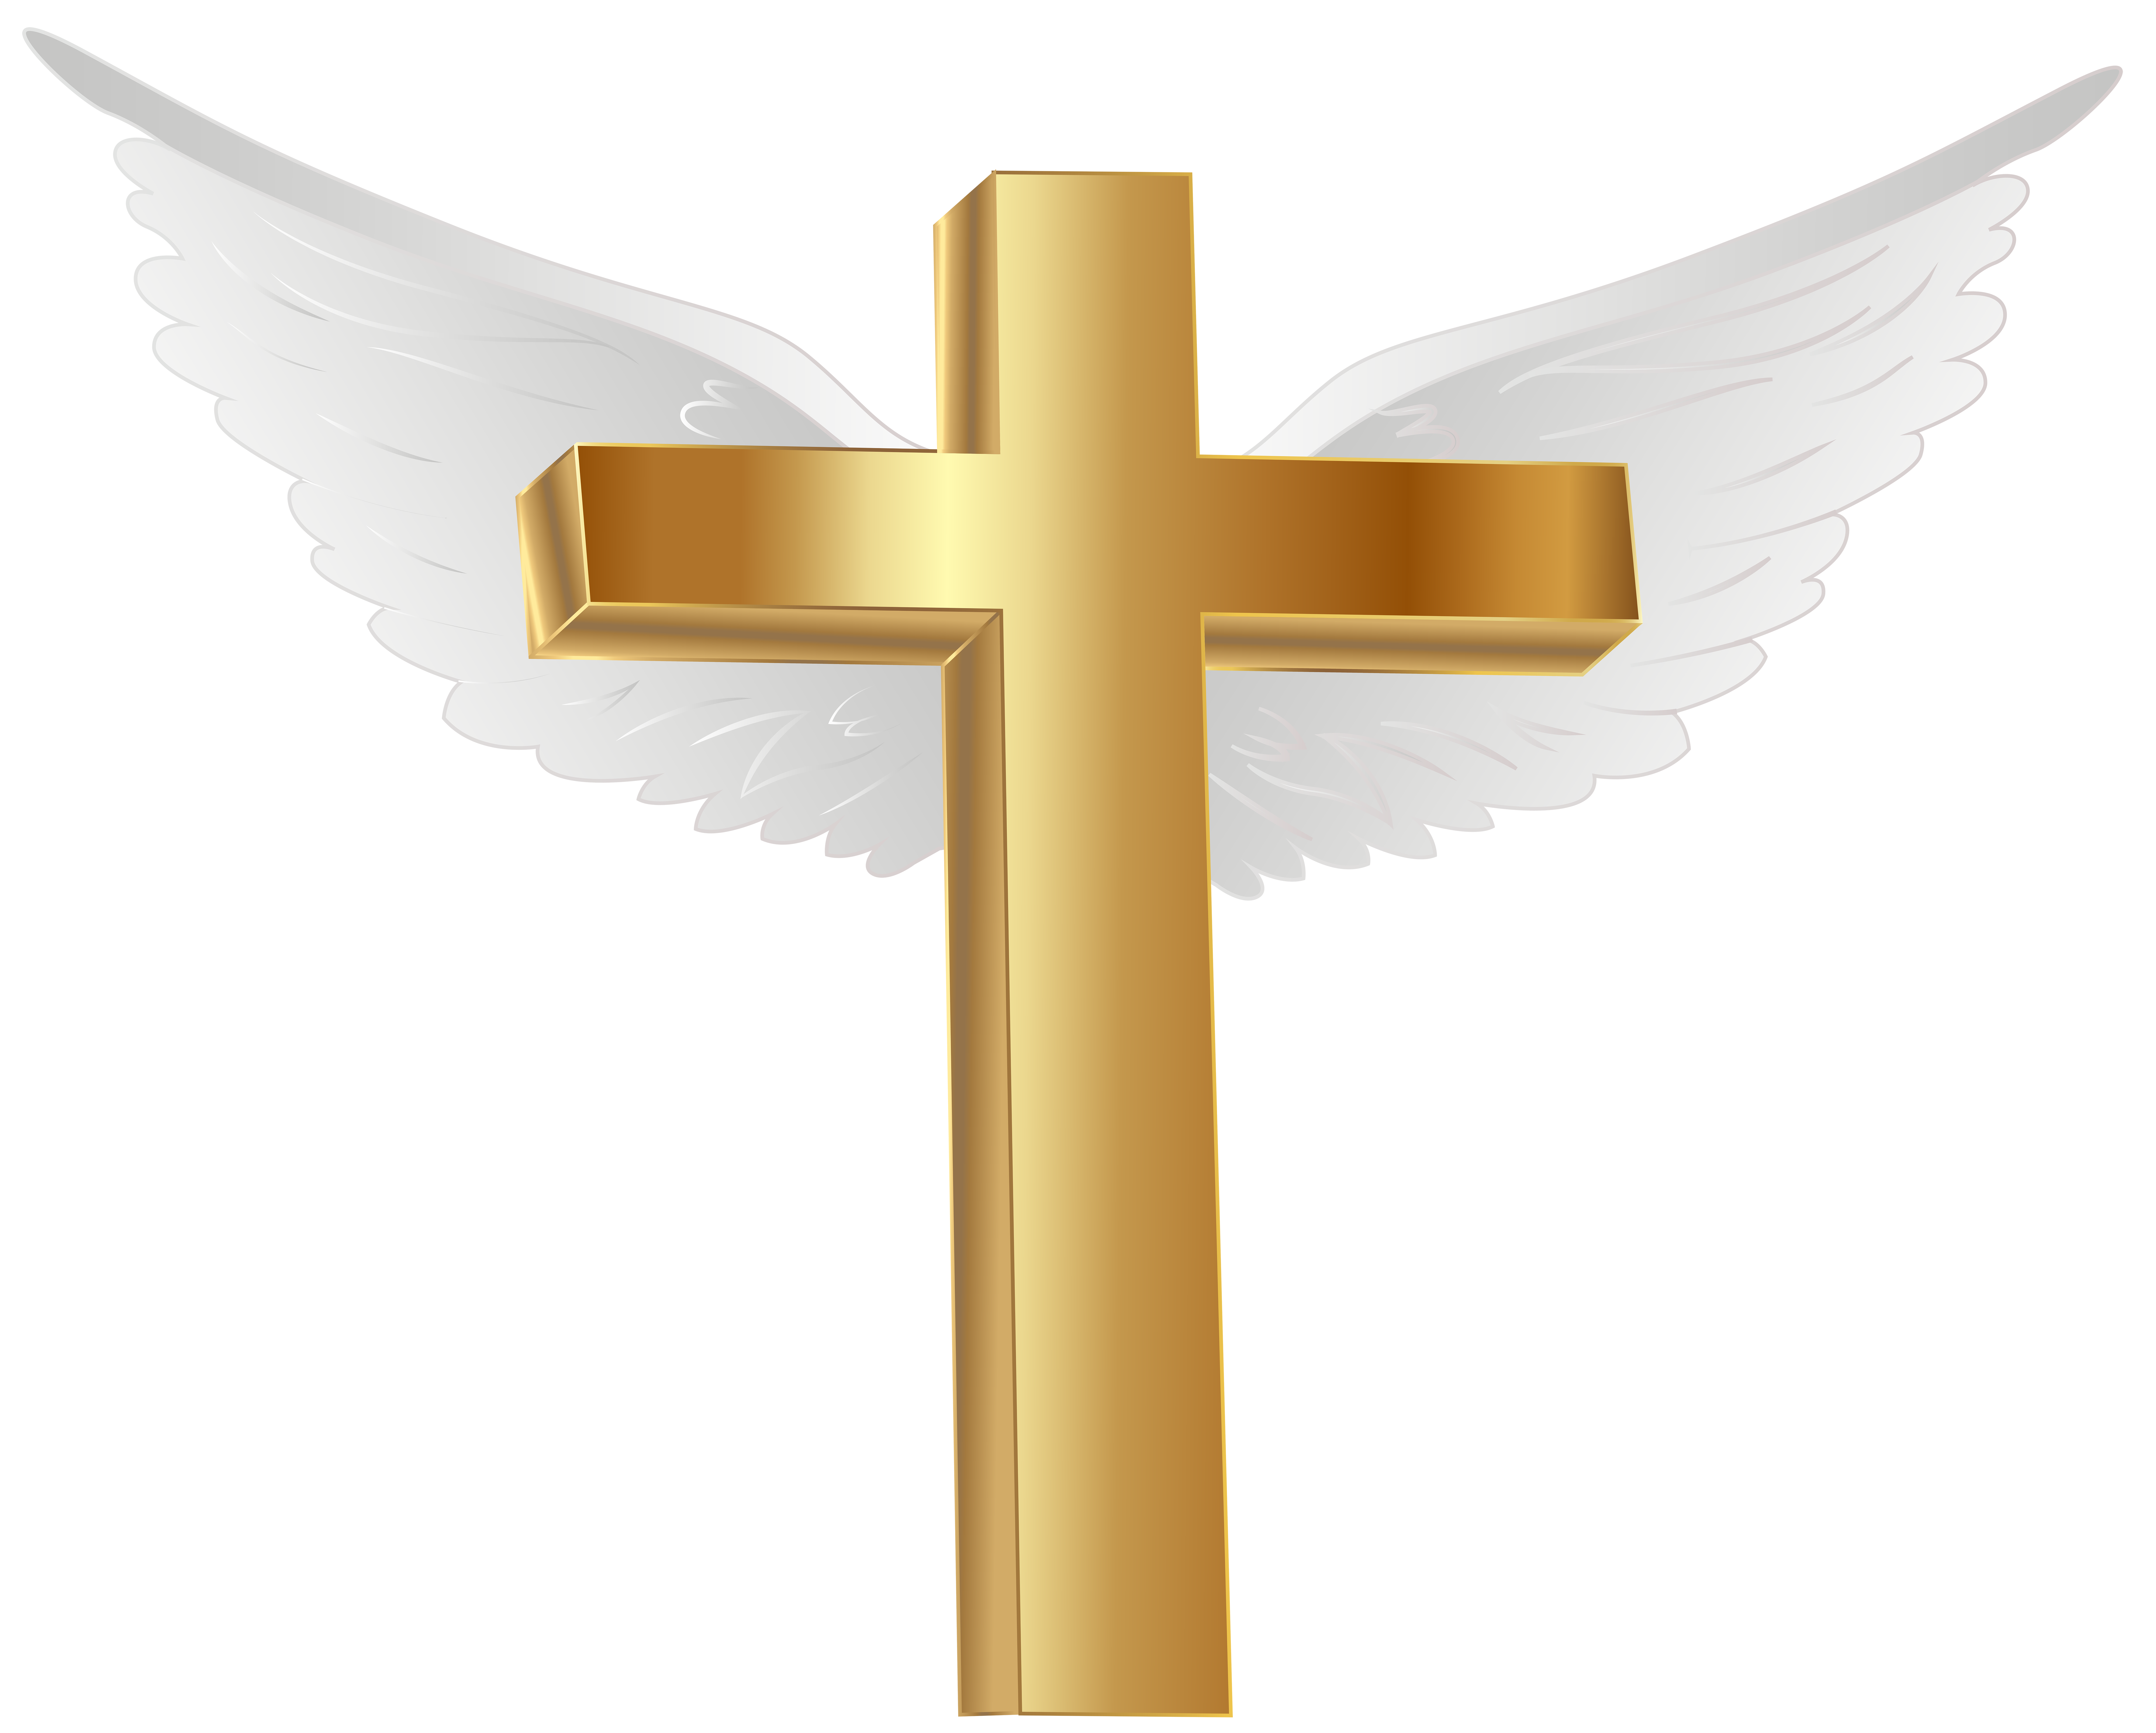 Angel cross clipart clipart royalty free download Pin by Logan Runn on Heroes | Angel wings png, Wings png, Cross clipart clipart royalty free download